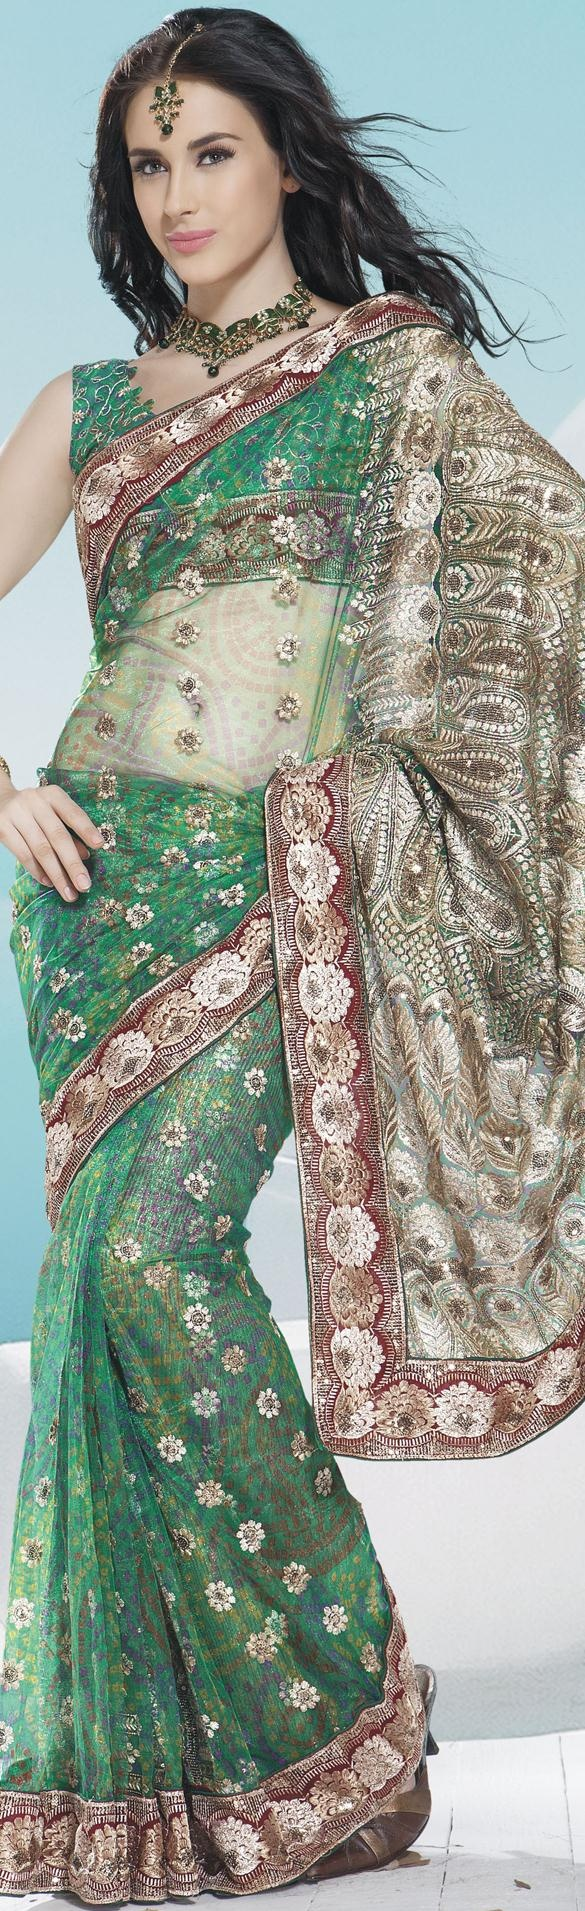 $81.64 Greenish Blue Net Bandhej Saree 16635 With Unstitched Blouse